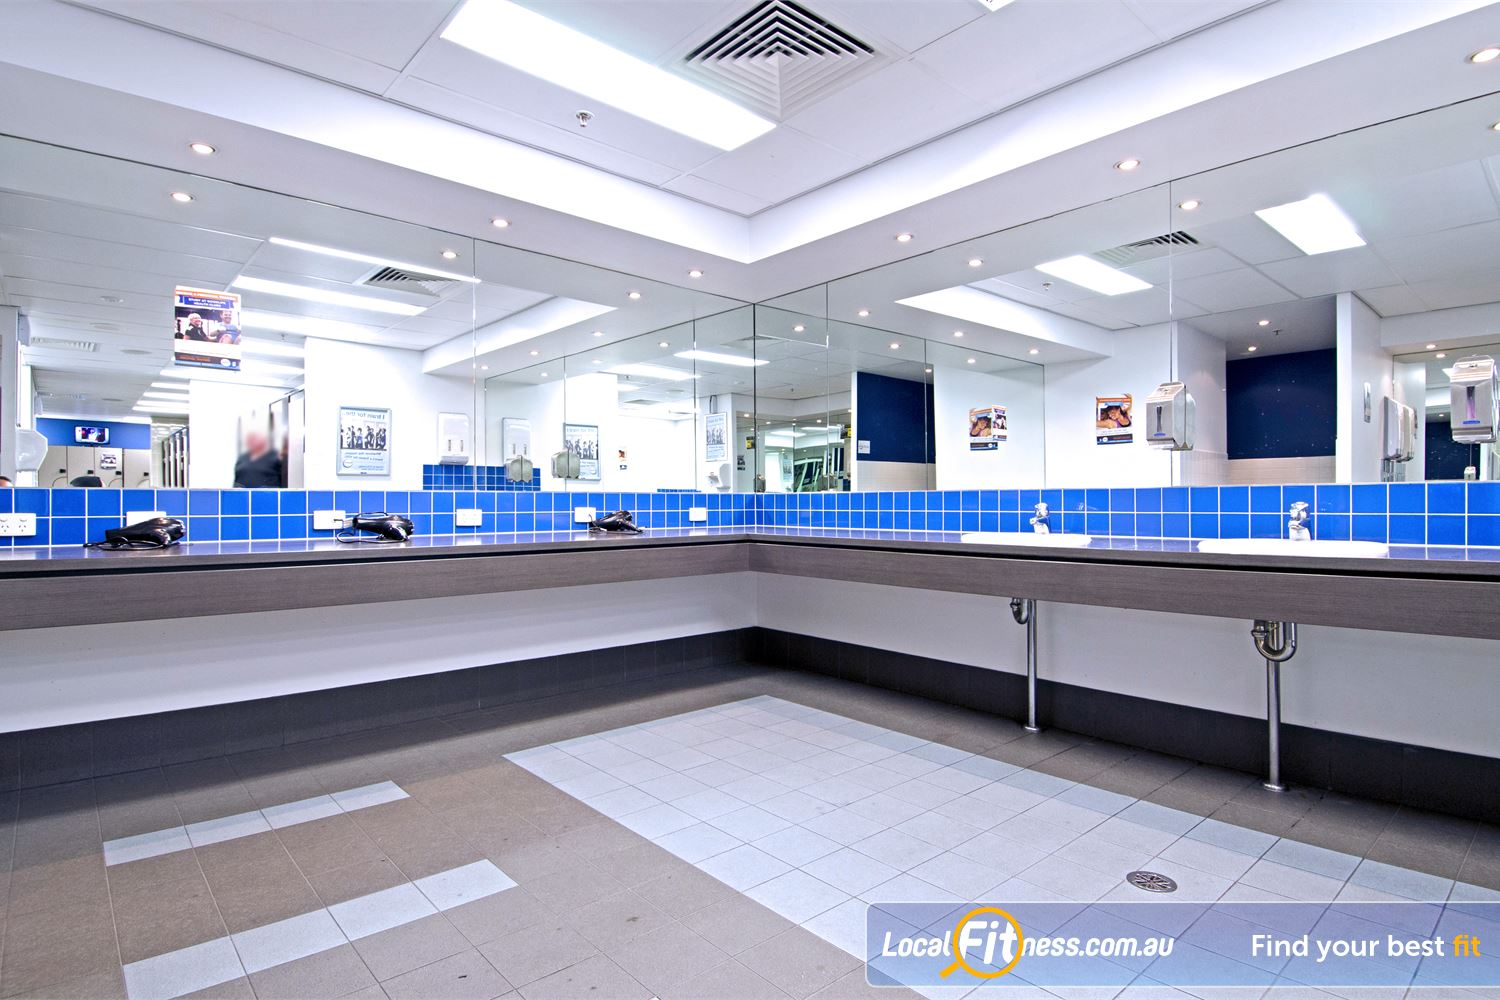 Goodlife Health Clubs Near Aspley The spacious Goodlife Chermside change room facilities.